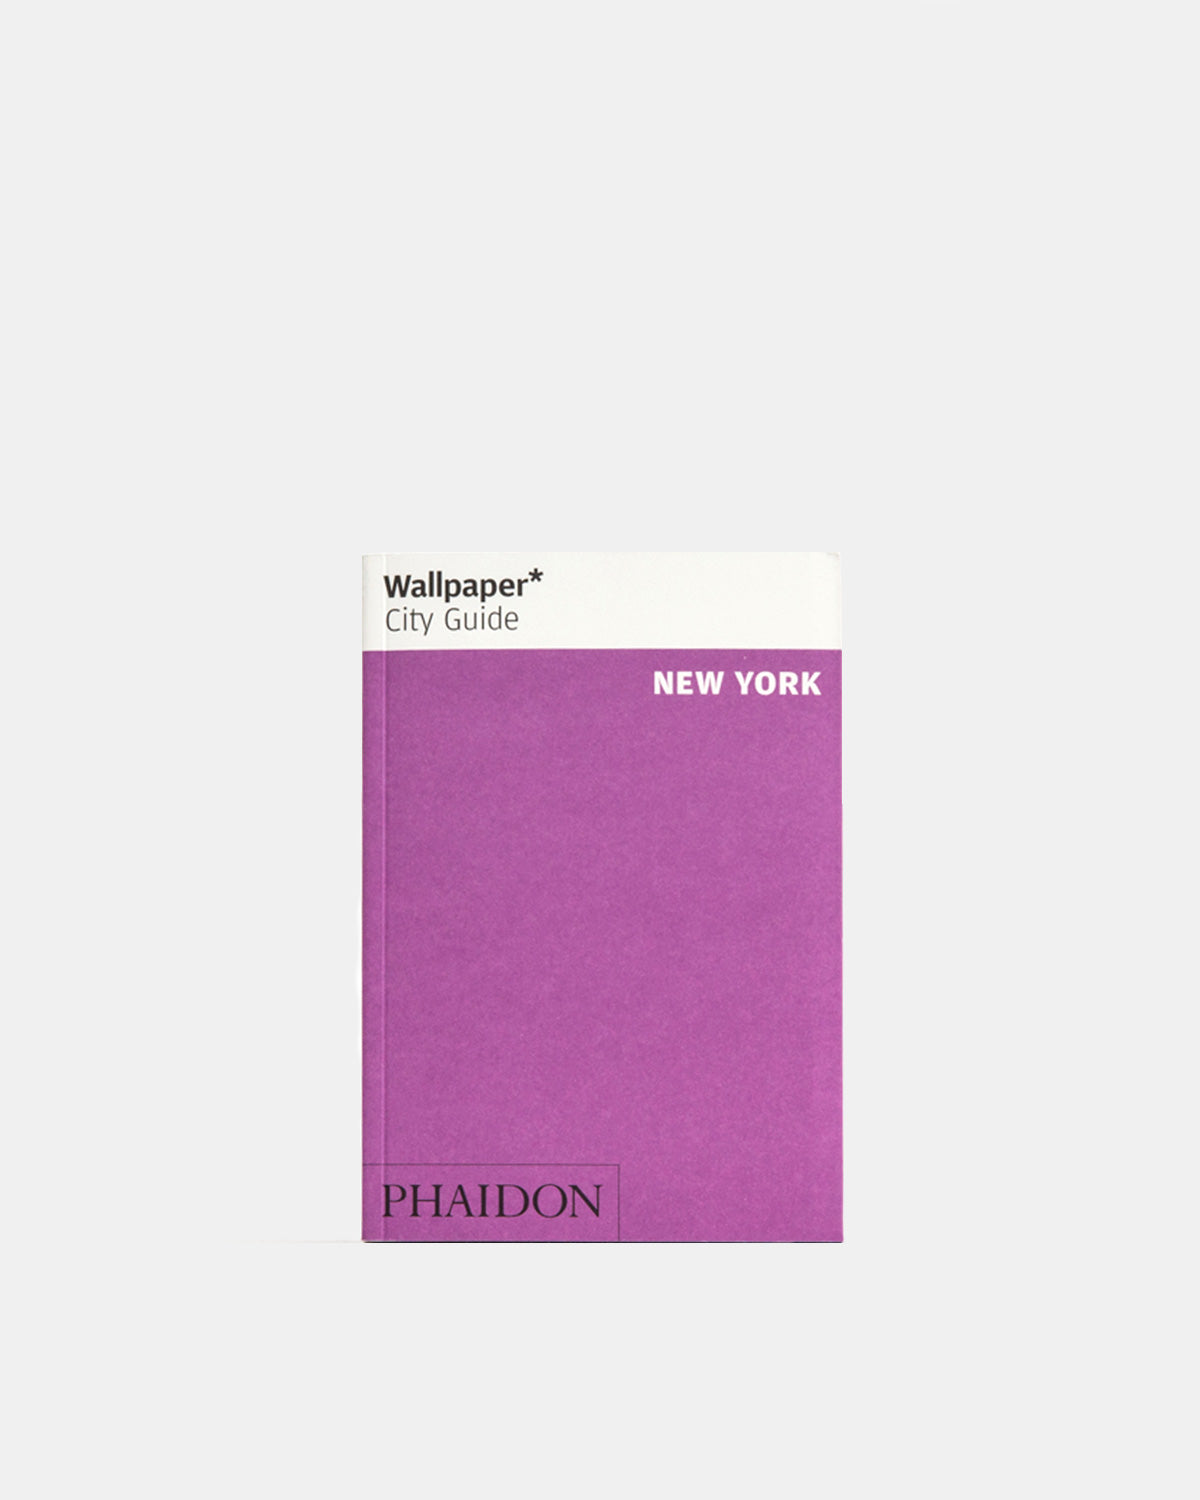 Wallpaper* - City Guide New York